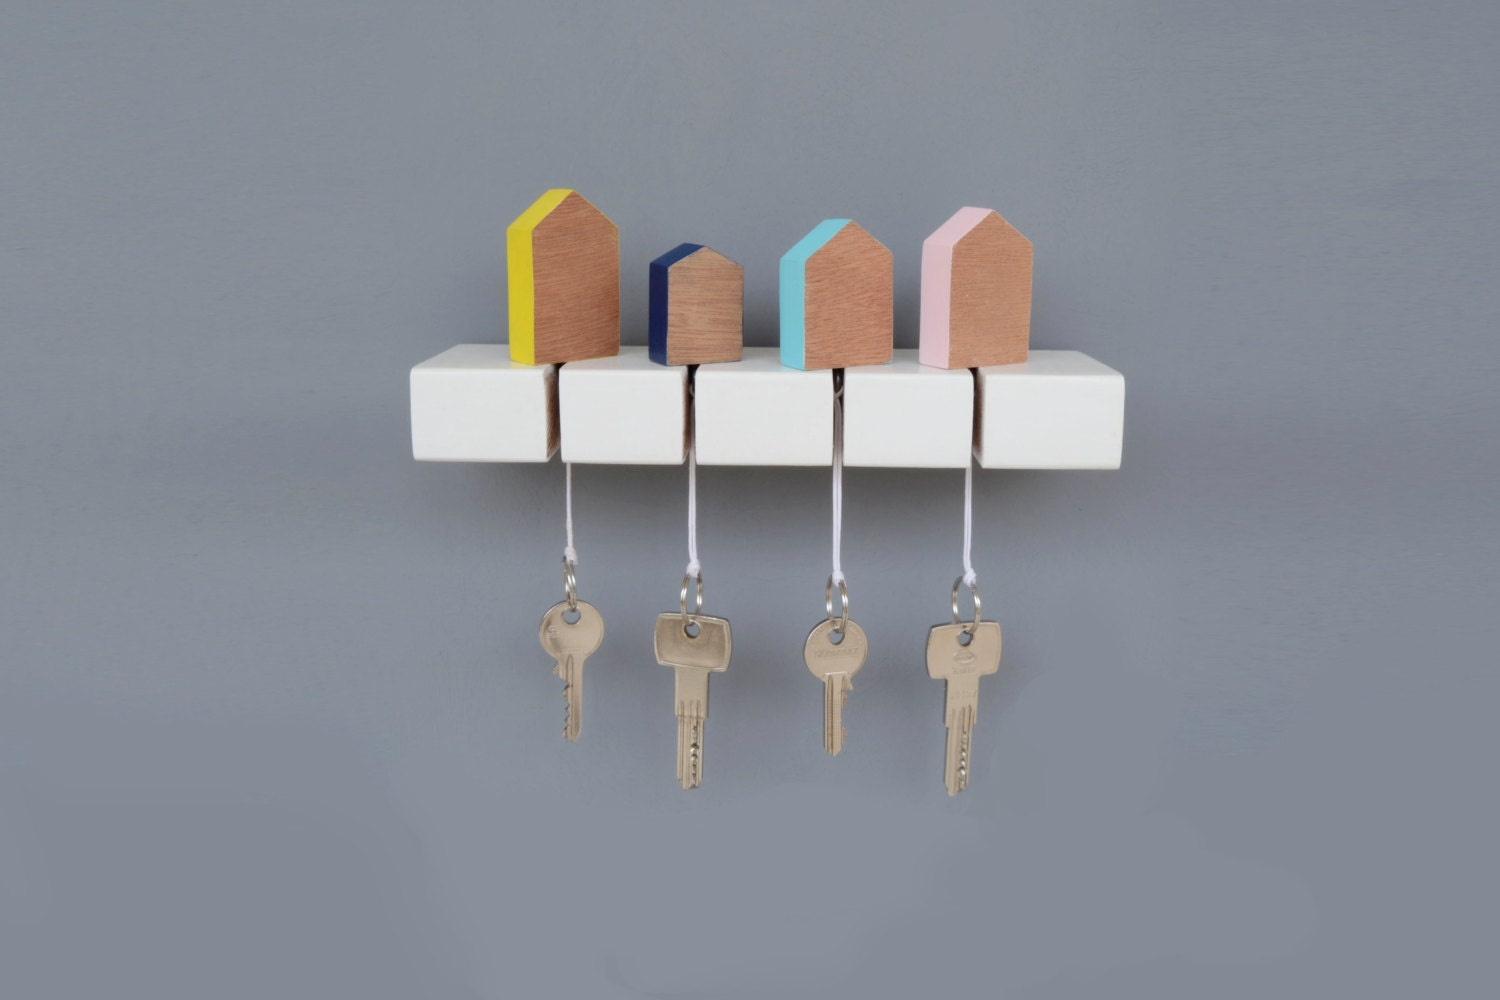 Key Holder Wooden Key Hanger Wall Key Holder Wall Key